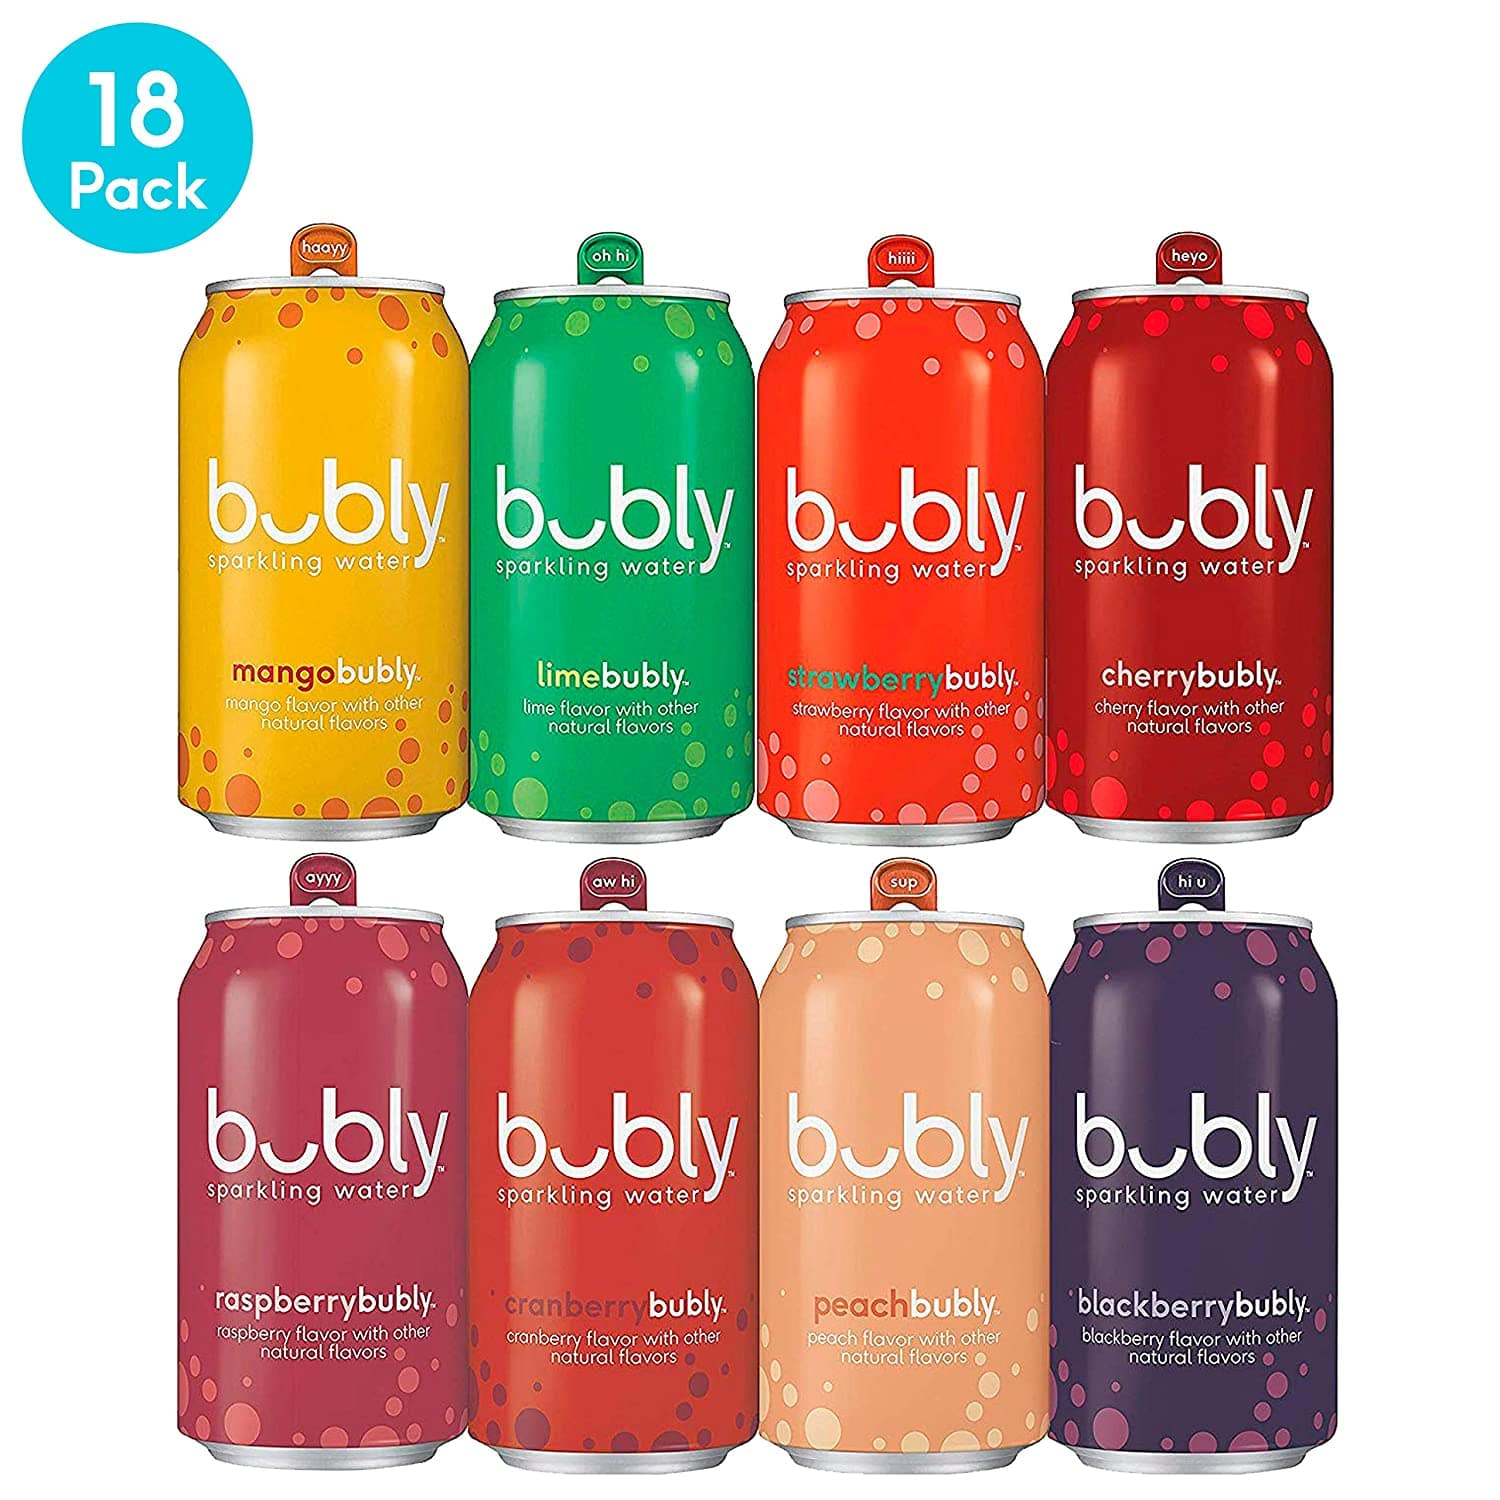 bubly Sparkling Water, 8 Flavor Berry Bliss OR Berry Peachy Variety Pack, 12 fl oz. cans (18 Pack) $5.91 Prime  IN STOCK